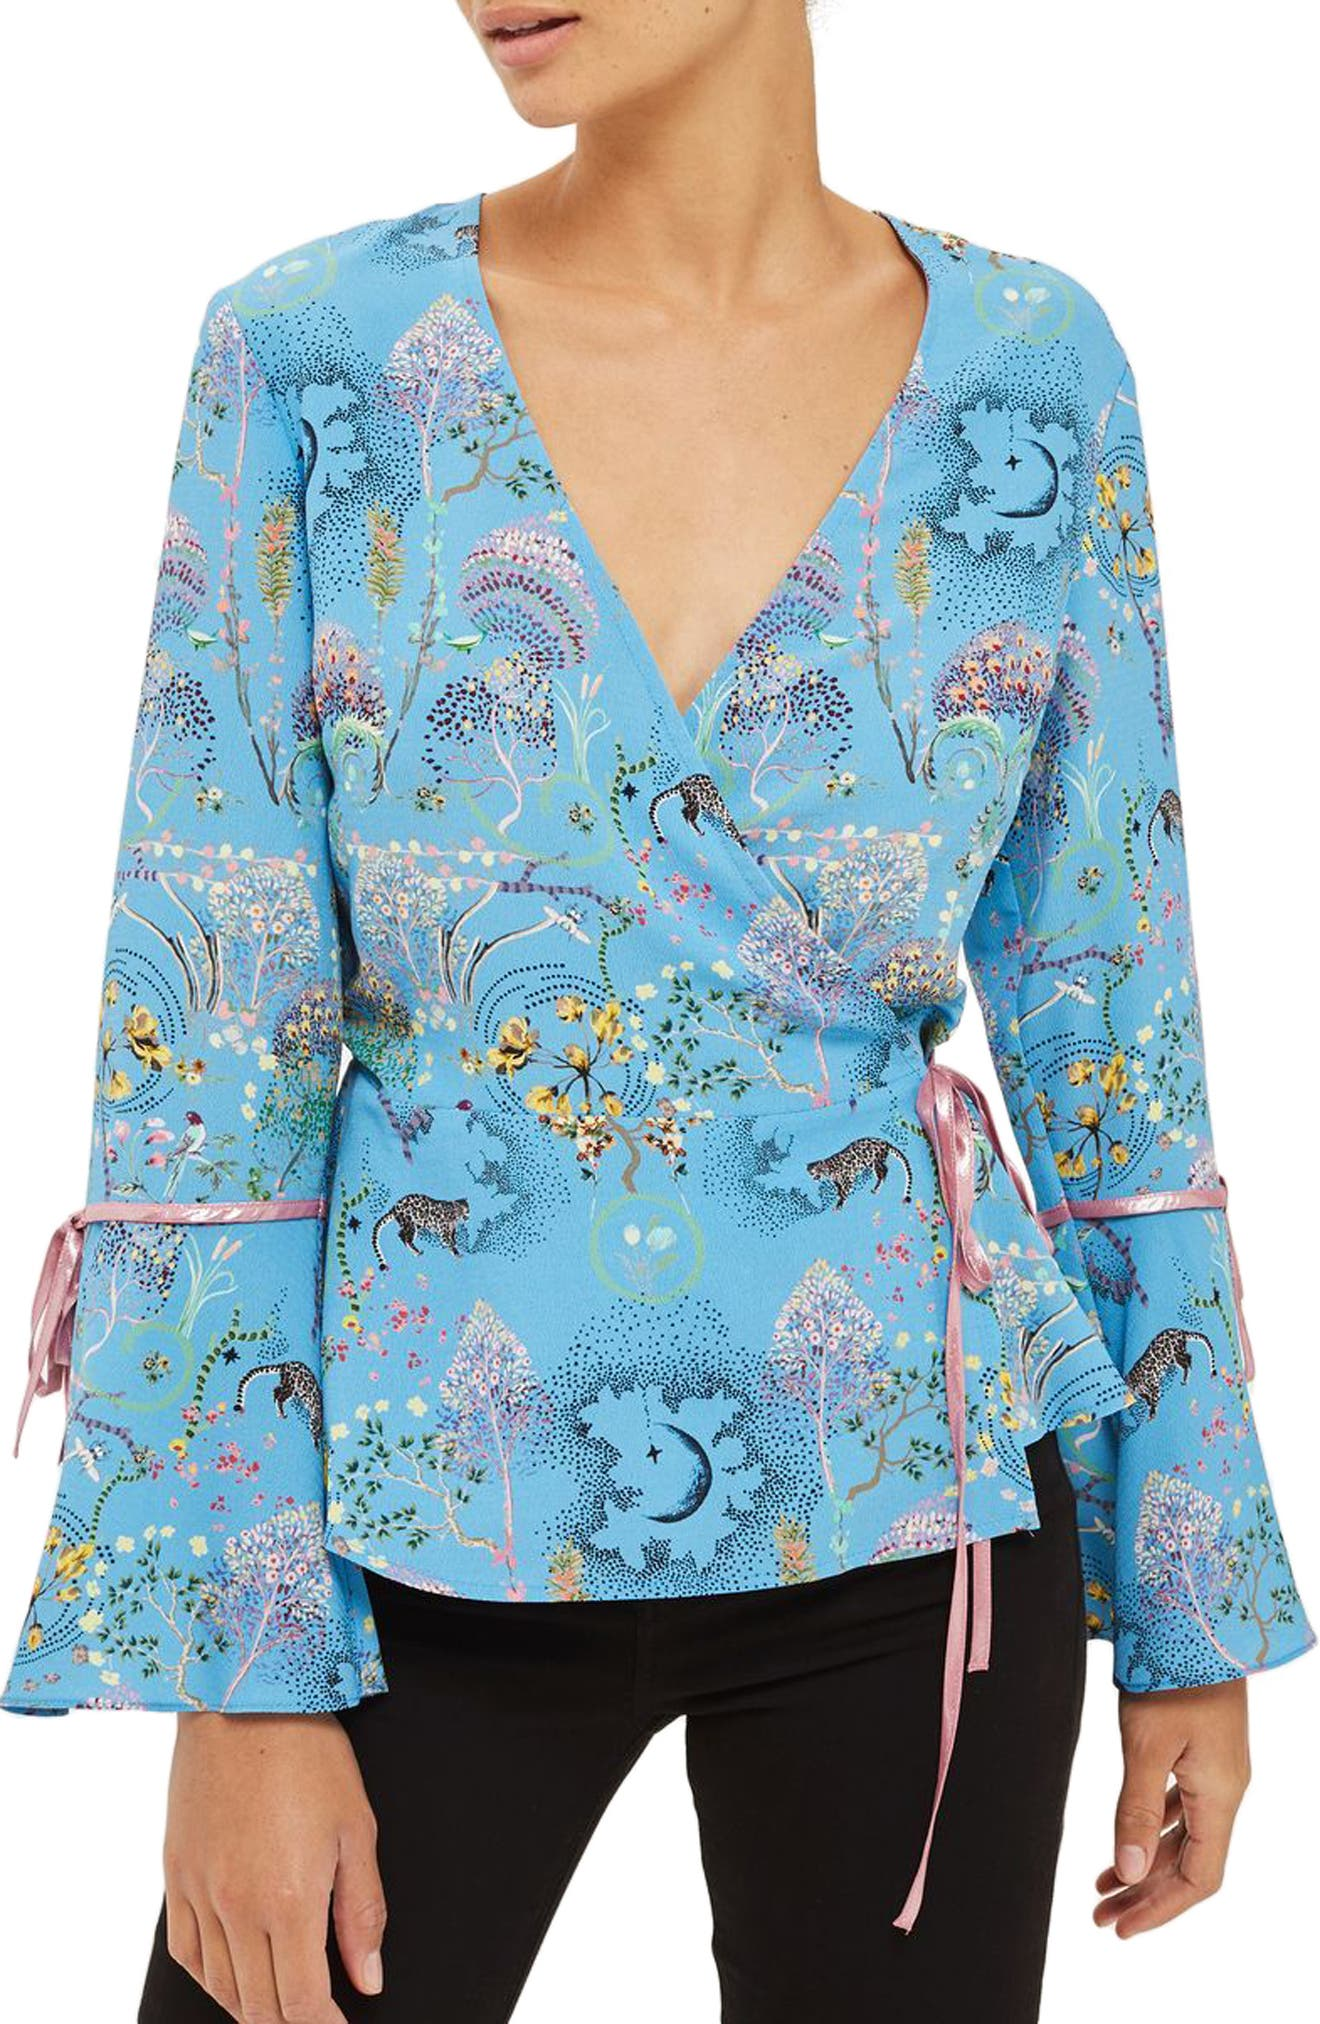 Magical Leopard Print Wrap Blouse,                             Main thumbnail 1, color,                             400